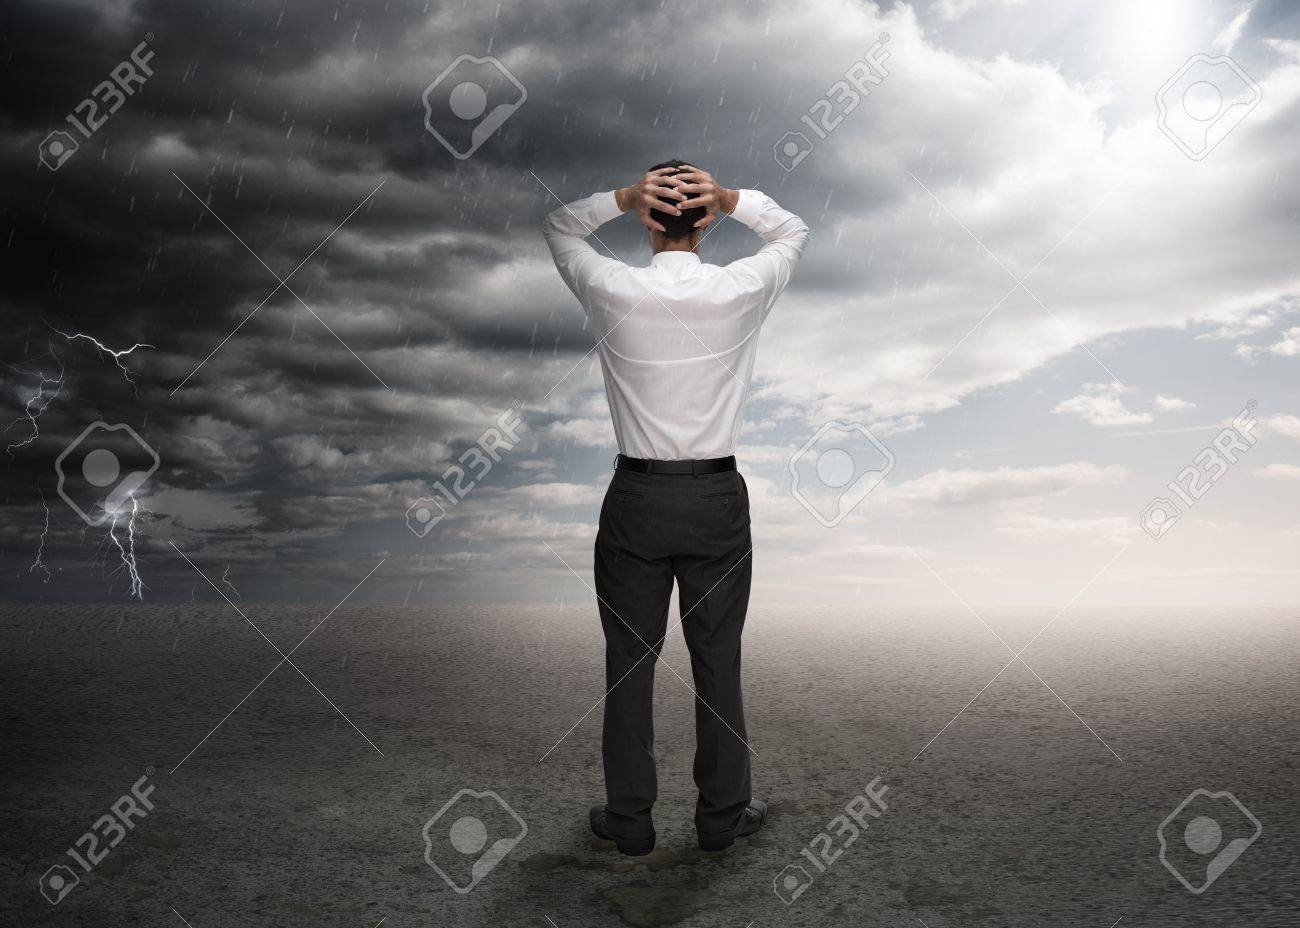 Businessman standing in a desert during a stormy weather Stock Photo - 20625385